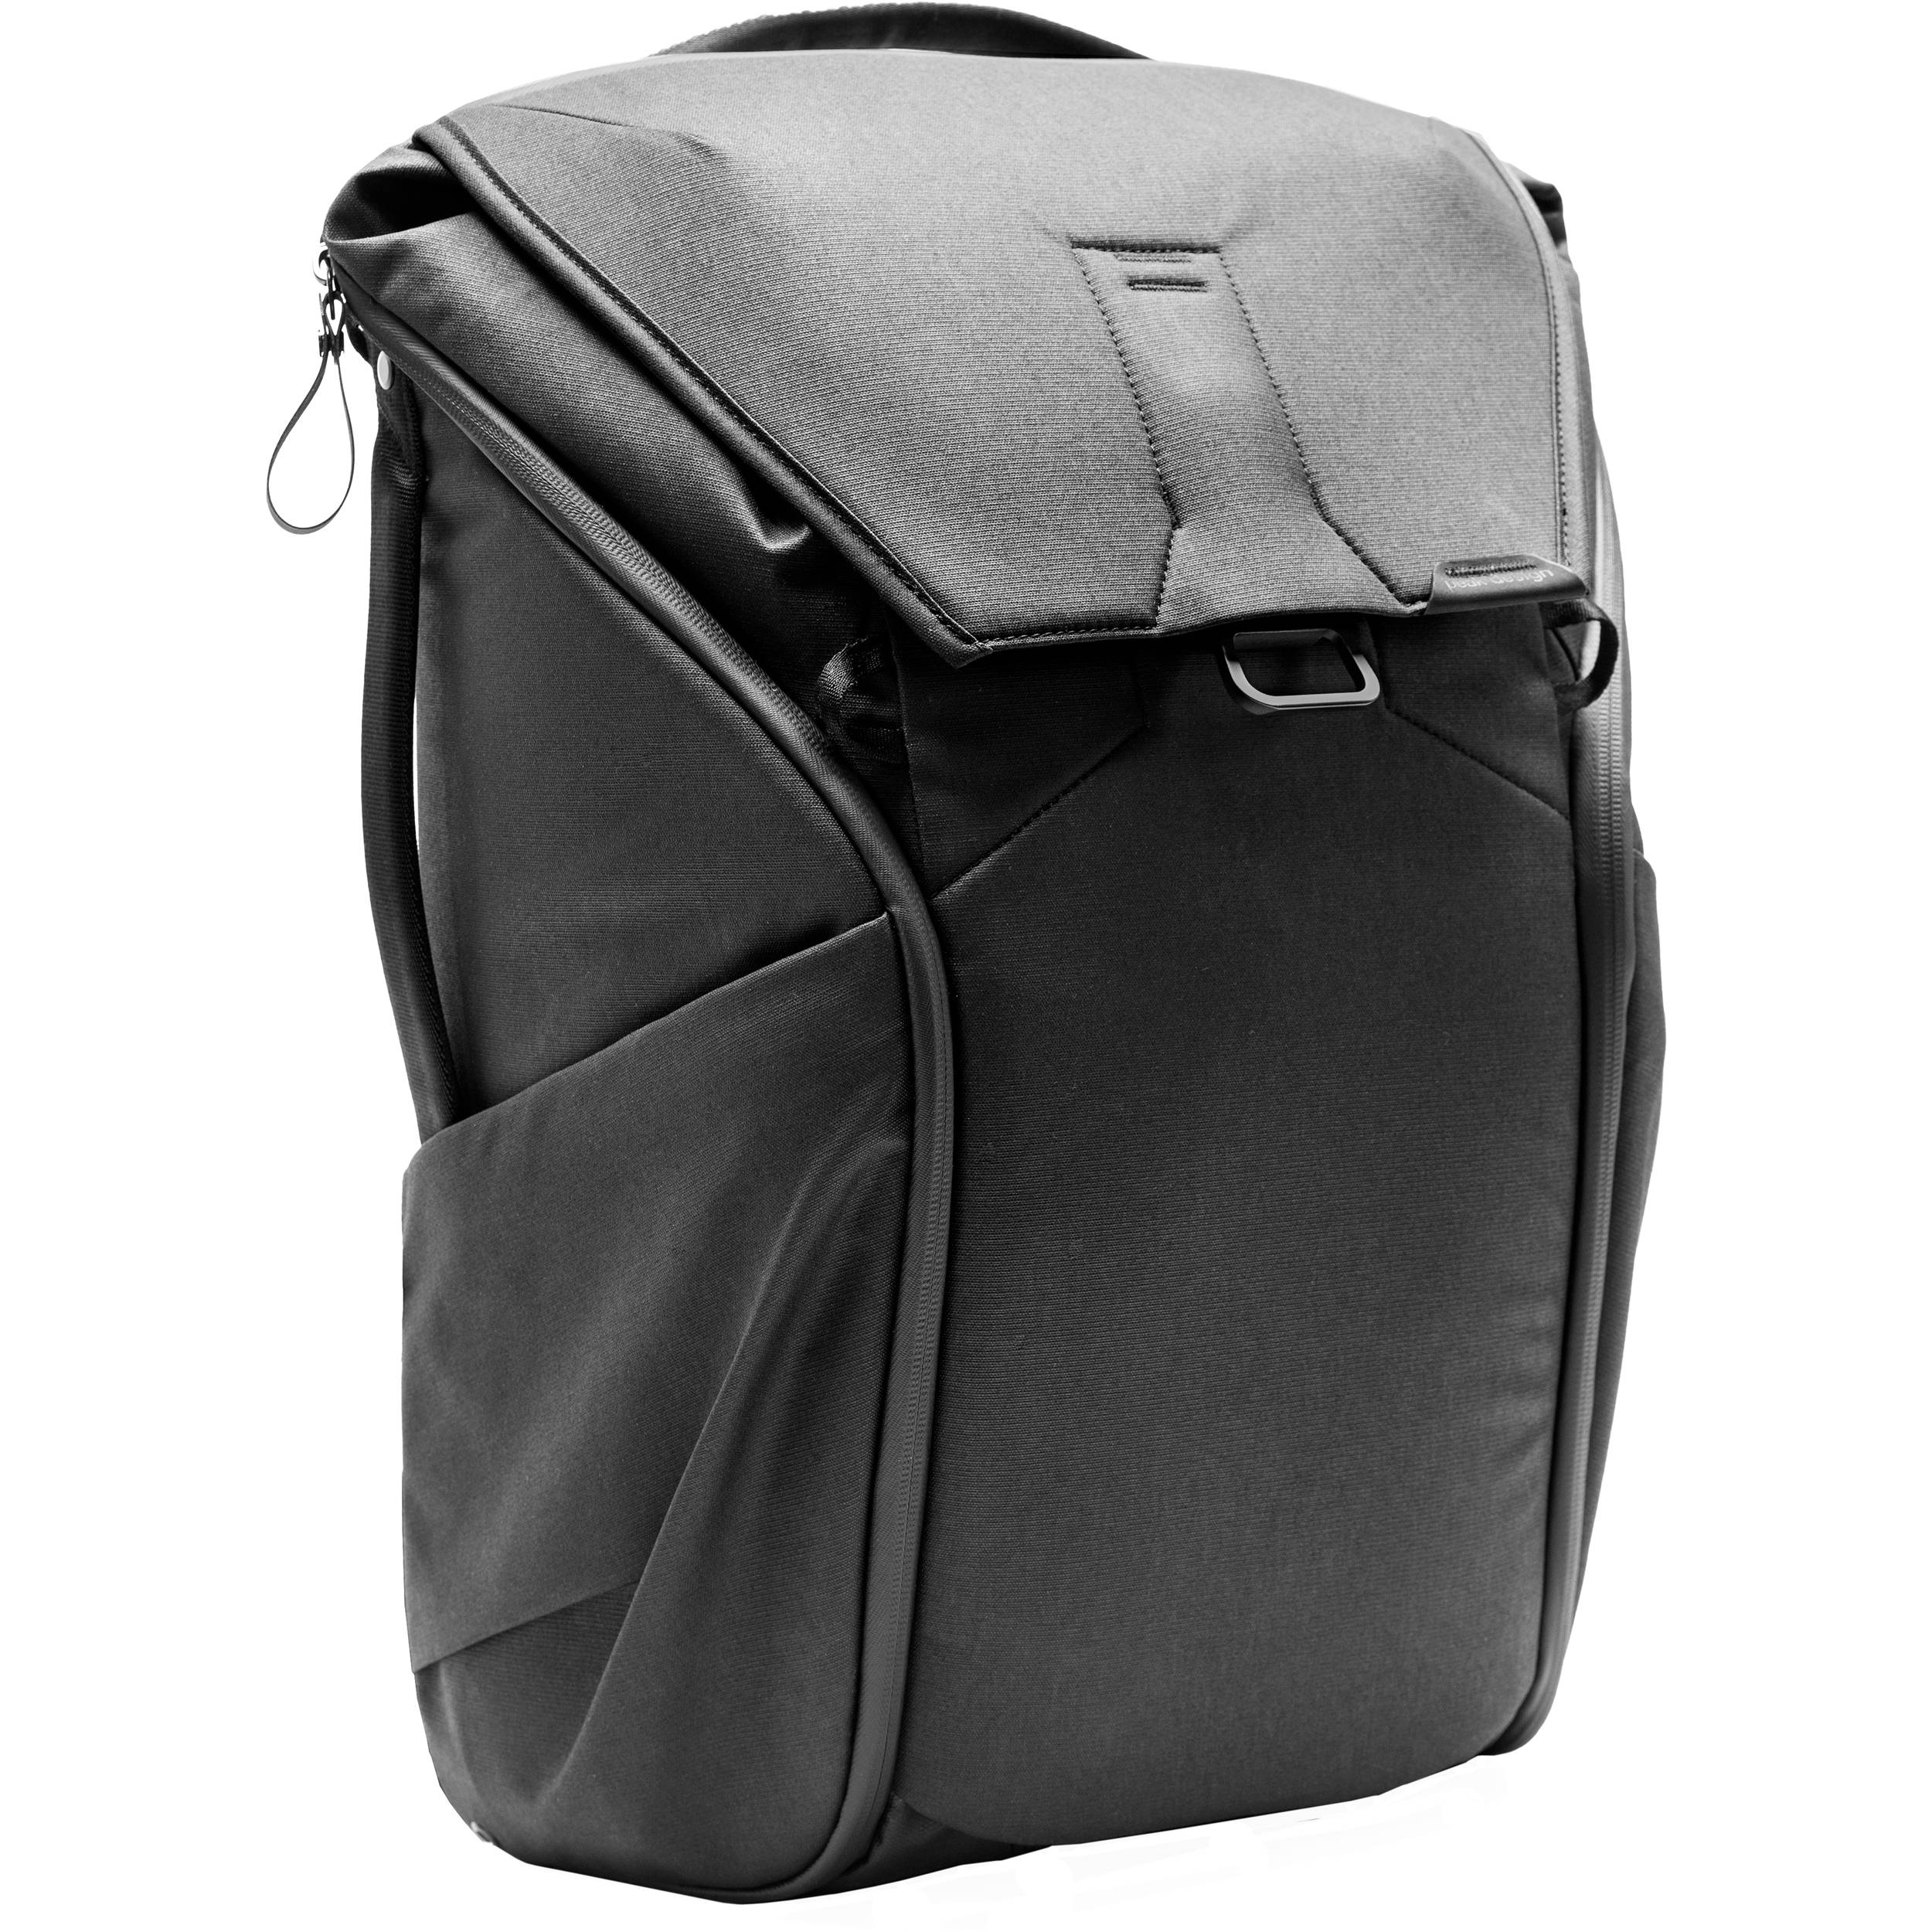 f79554b30d7 Peak Design Everyday Backpack (30L, Black) BB-30-BK-1 B&H Photo